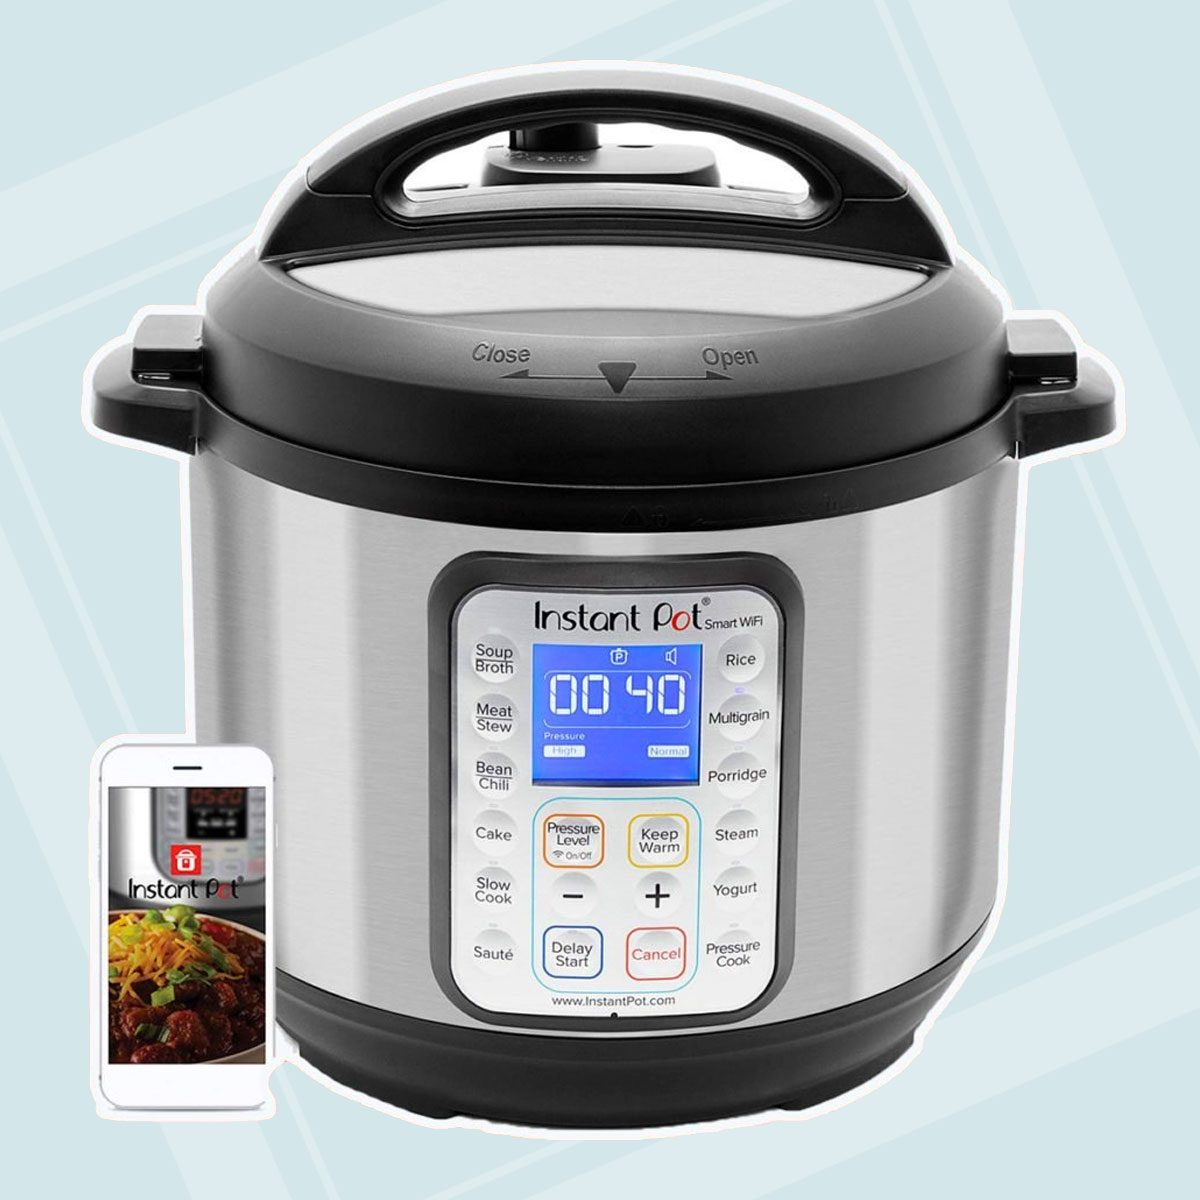 Instant Pot Smart WiFi 8-in-1 Electric Pressure Cooker, Slow Cooker, Rice Cooker, Steamer, Saute, Yogurt Maker, Cake Maker, and Warmer|6 Quart|13 One-Touch..